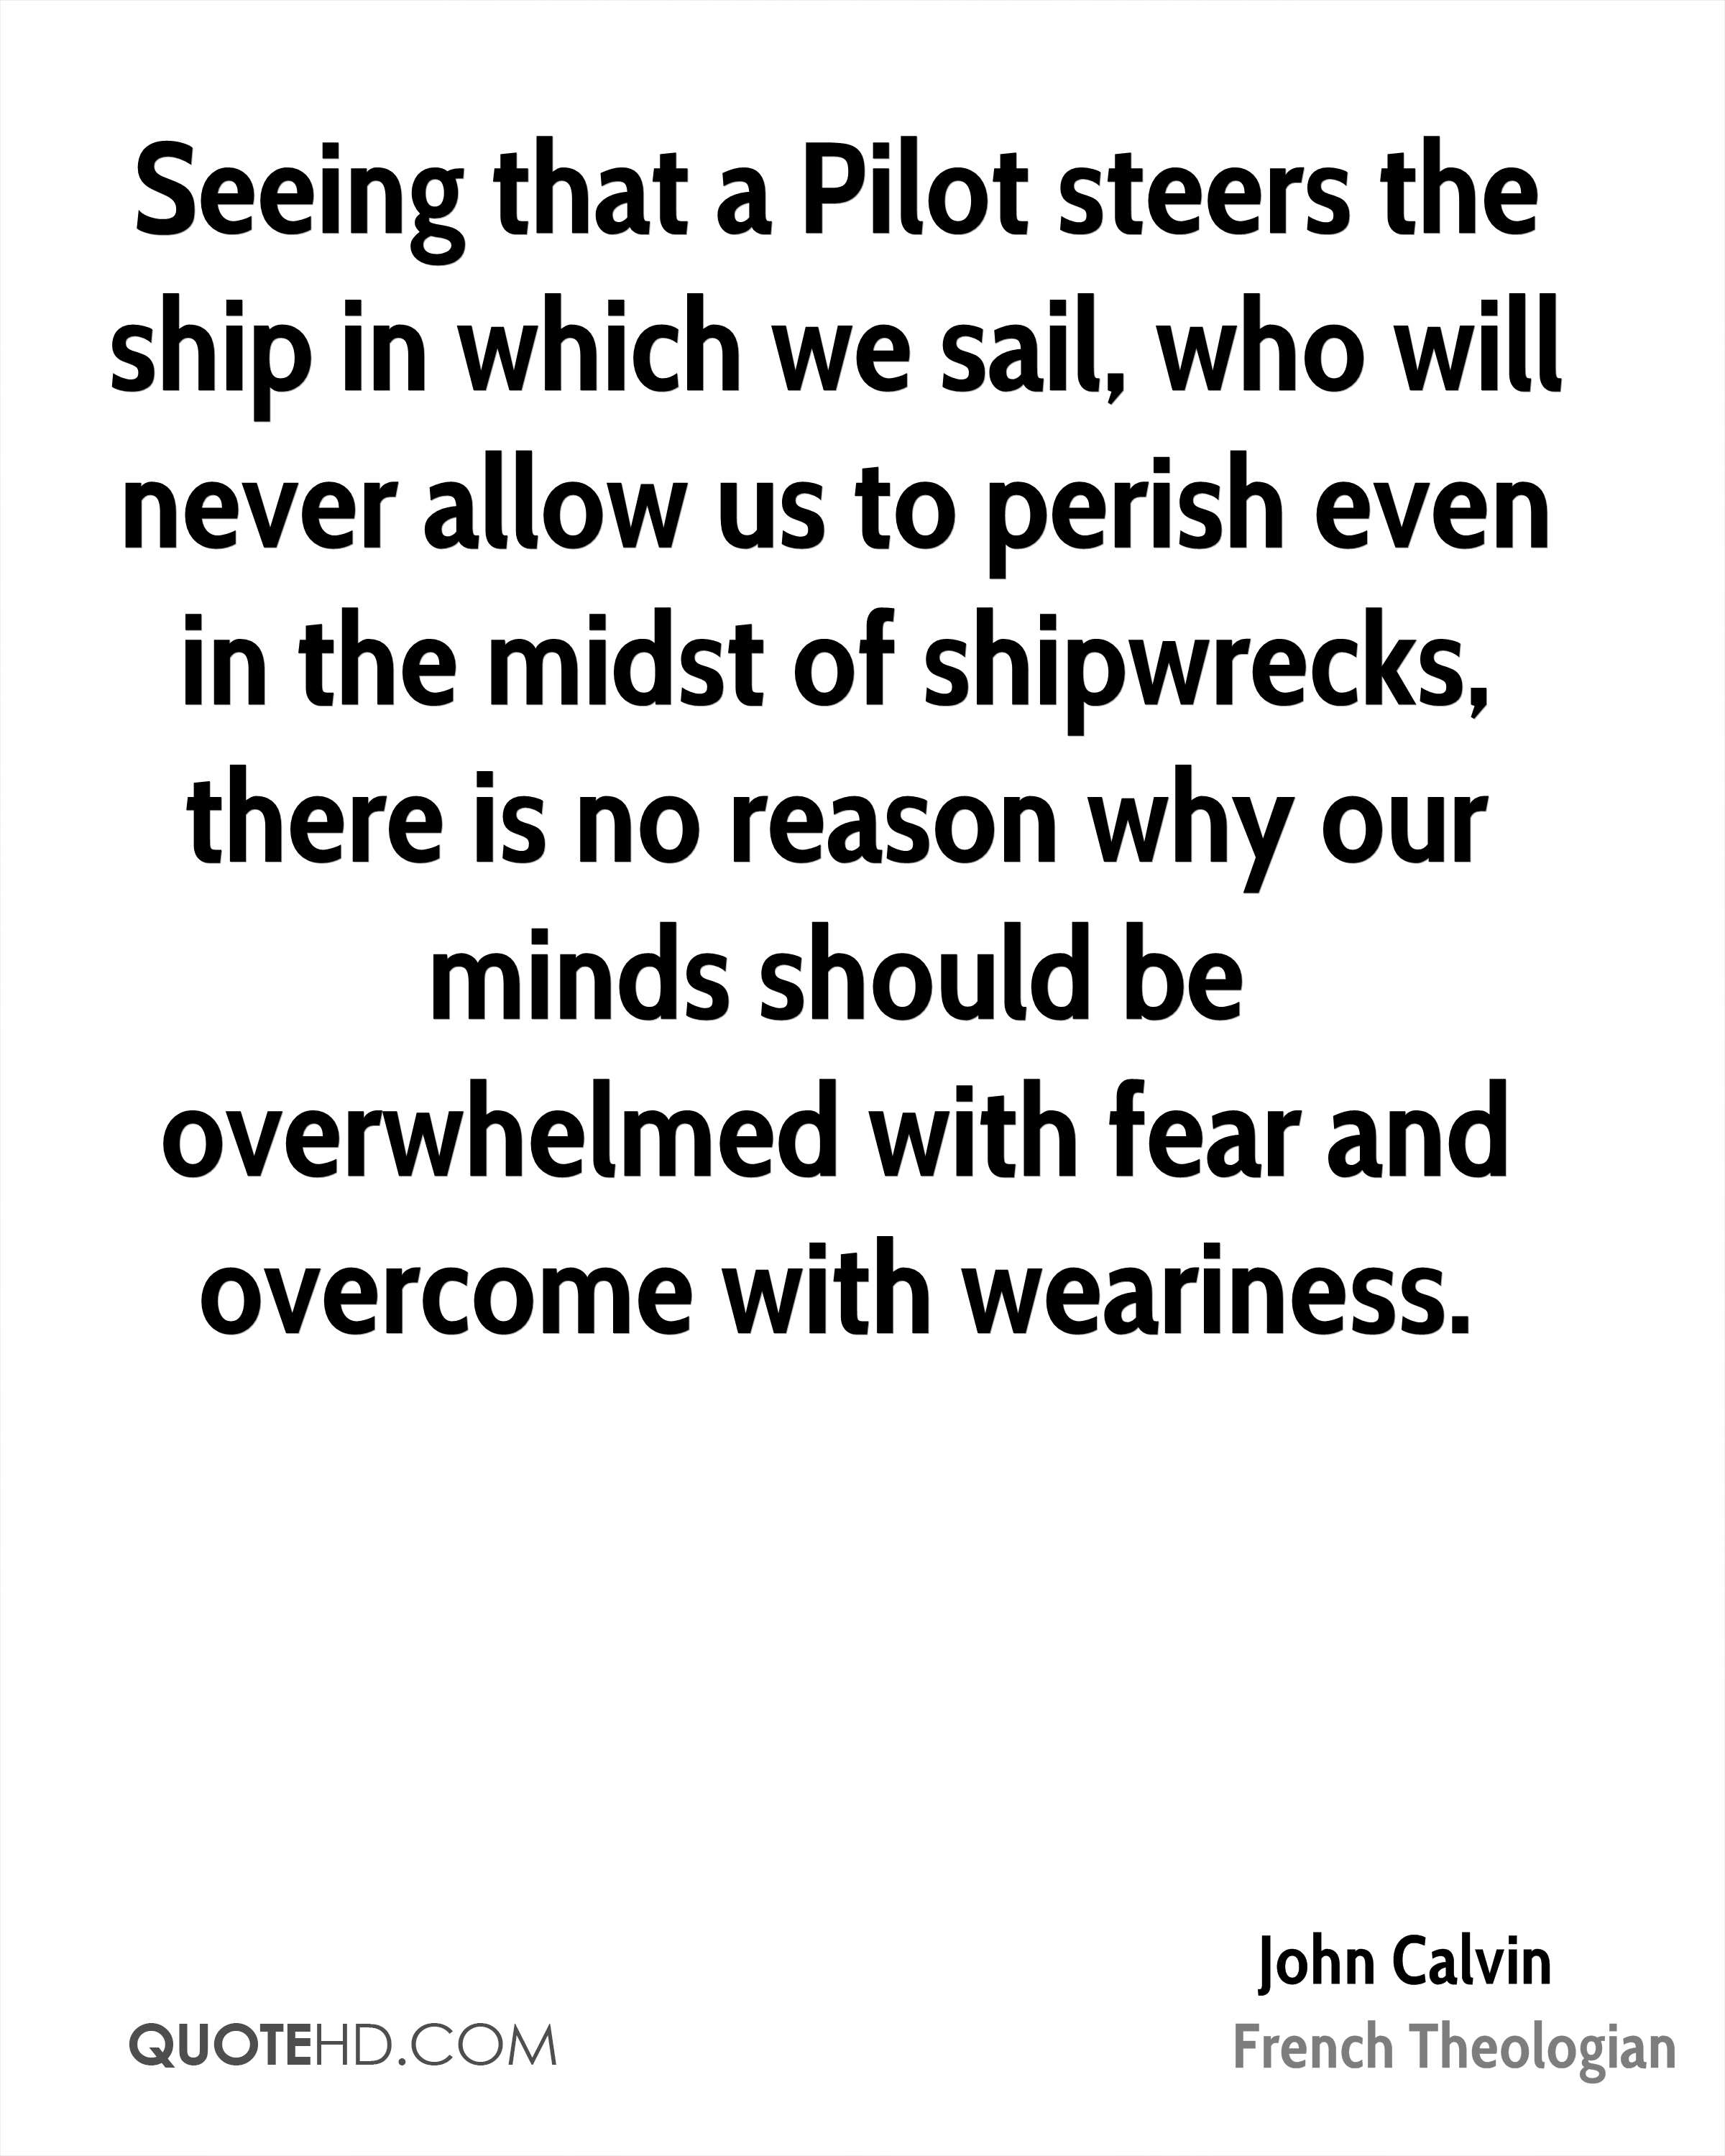 Seeing that a Pilot steers the ship in which we sail, who will never allow us to perish even in the midst of shipwrecks, there is no reason why our minds should be overwhelmed with fear and overcome with weariness.